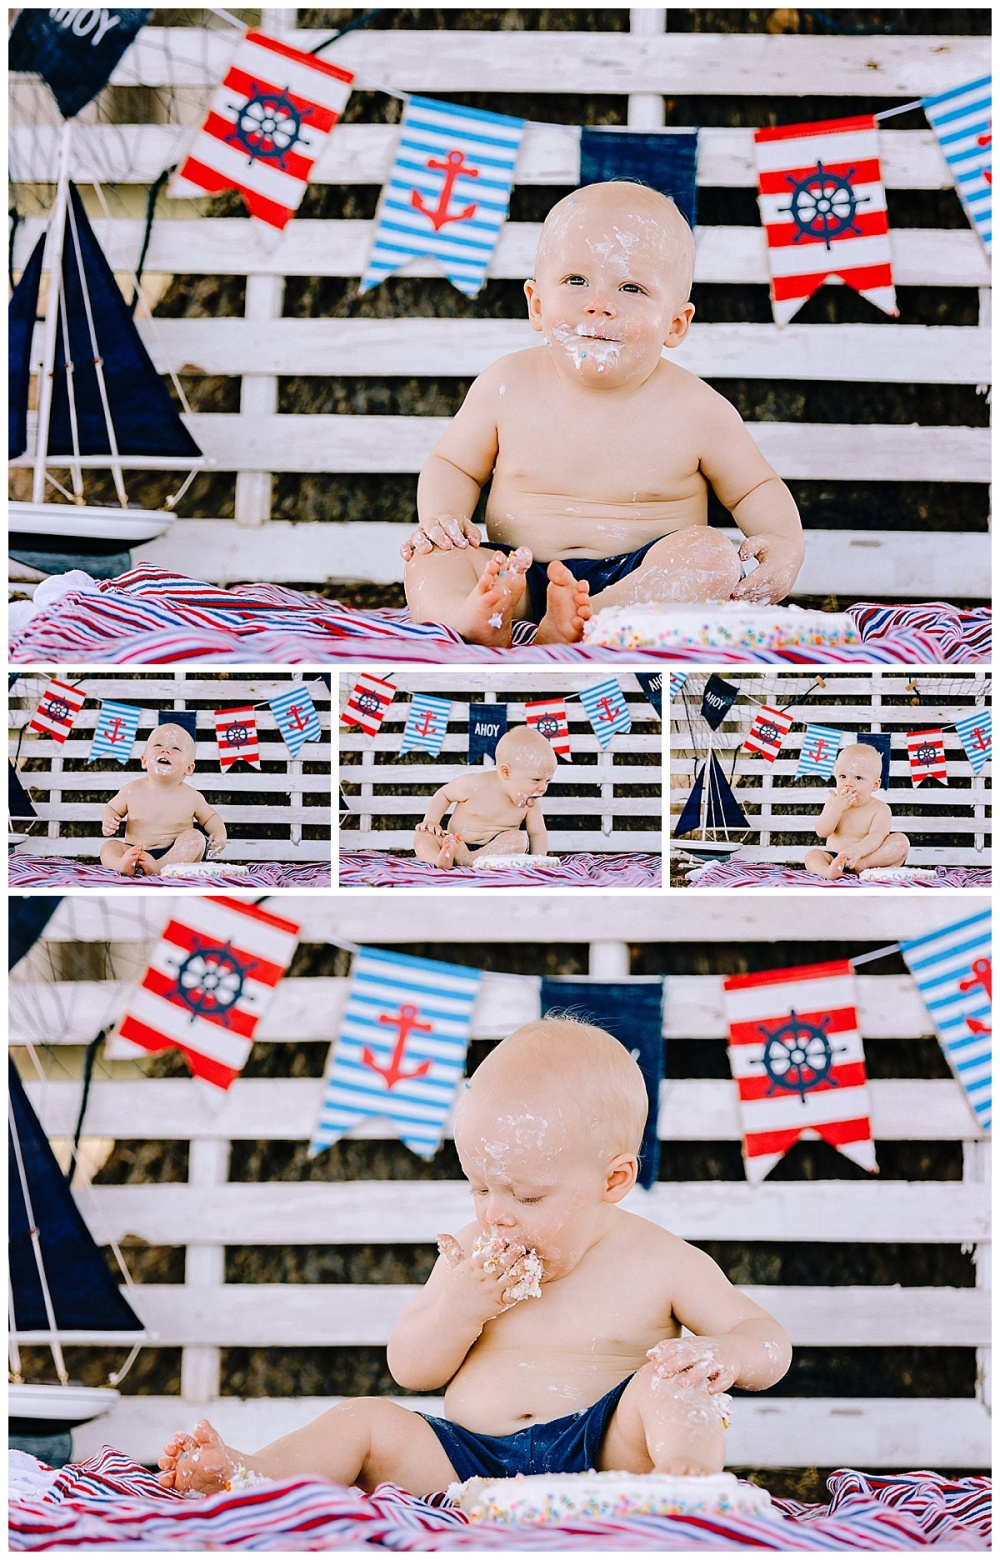 Carly-Barton-Photography-Birthday-Session-LaVernia-Texas-Jameson-1-year-family-photos_0016.jpg